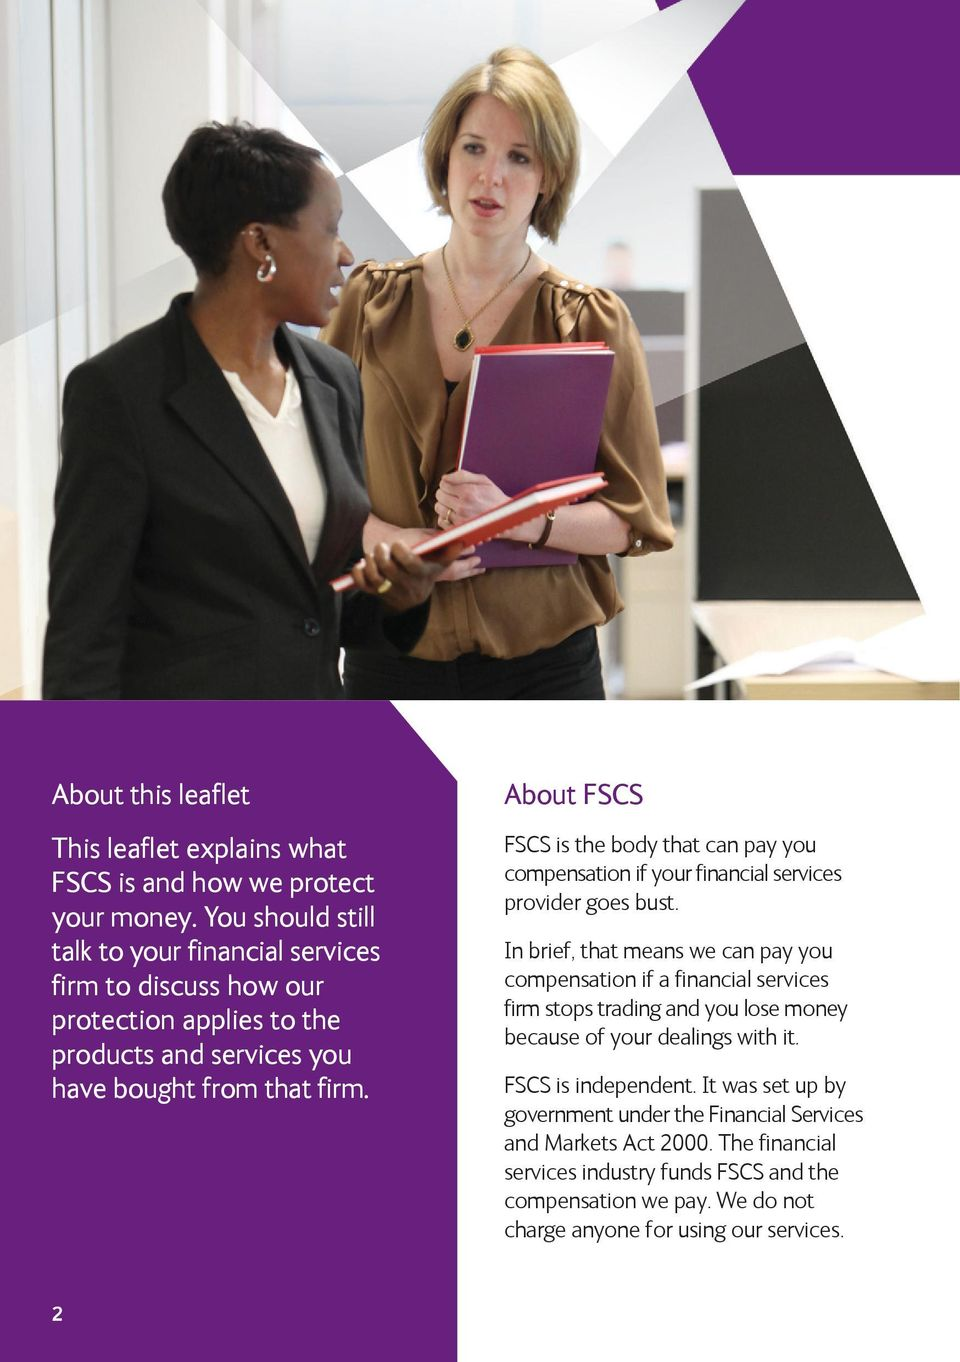 About FSCS FSCS is the body that can pay you compensation if your financial services provider goes bust.